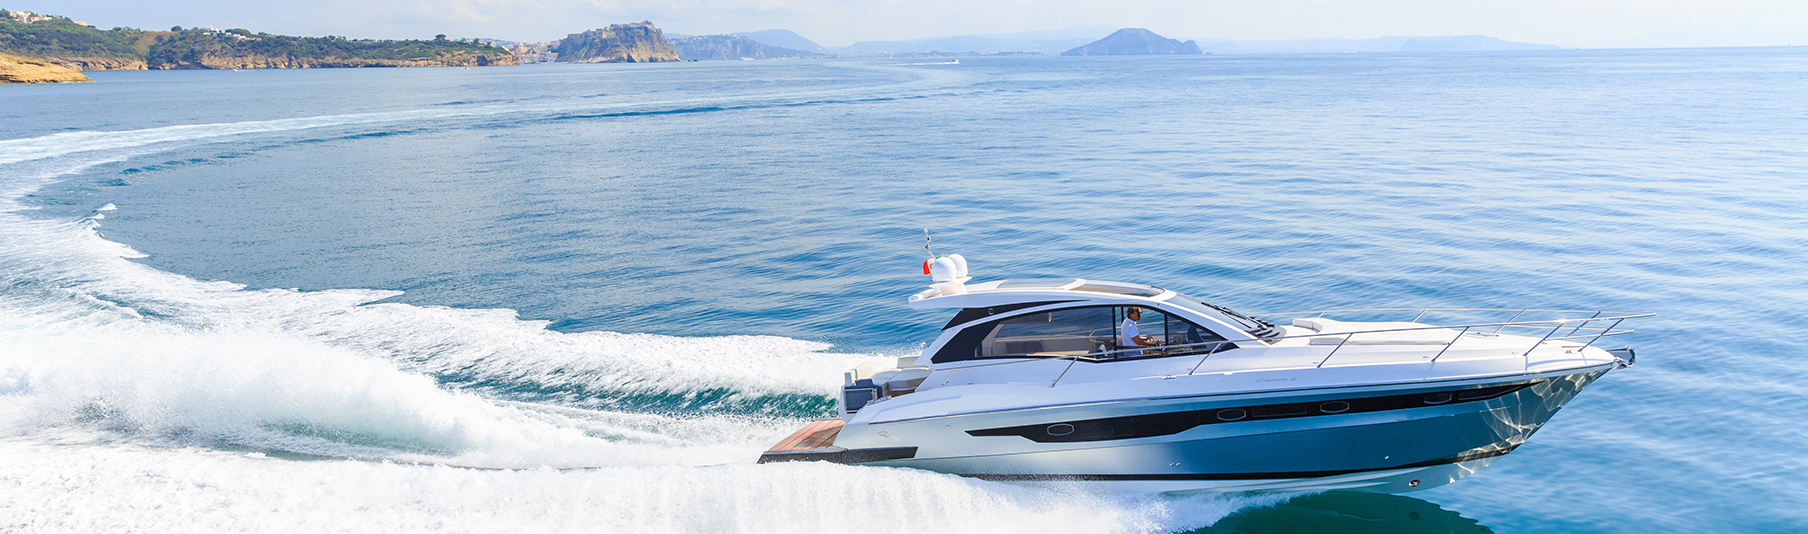 High Net Worth Insurance: A man driving a private boat across the sea